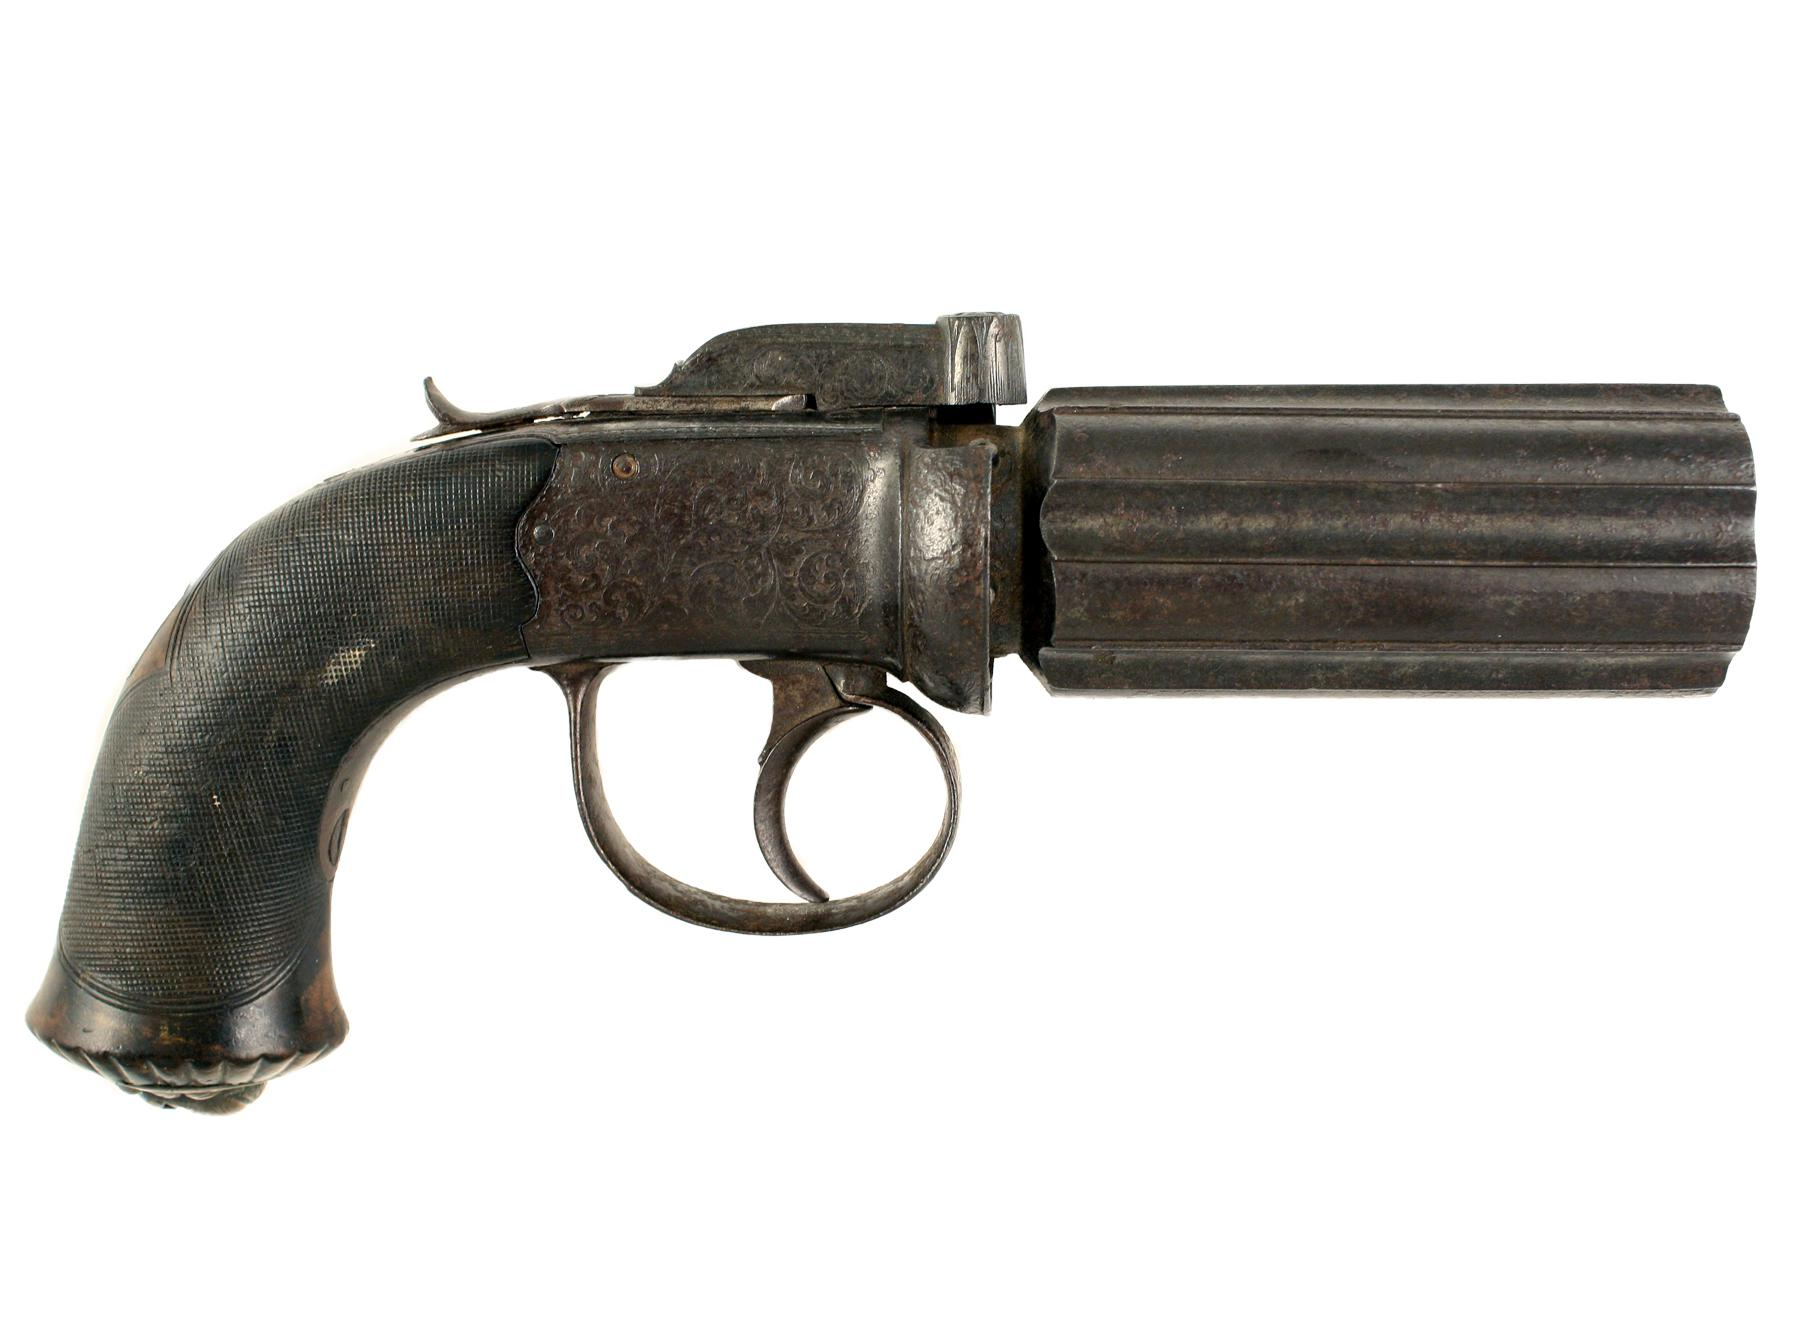 A Pepperbox Pistol